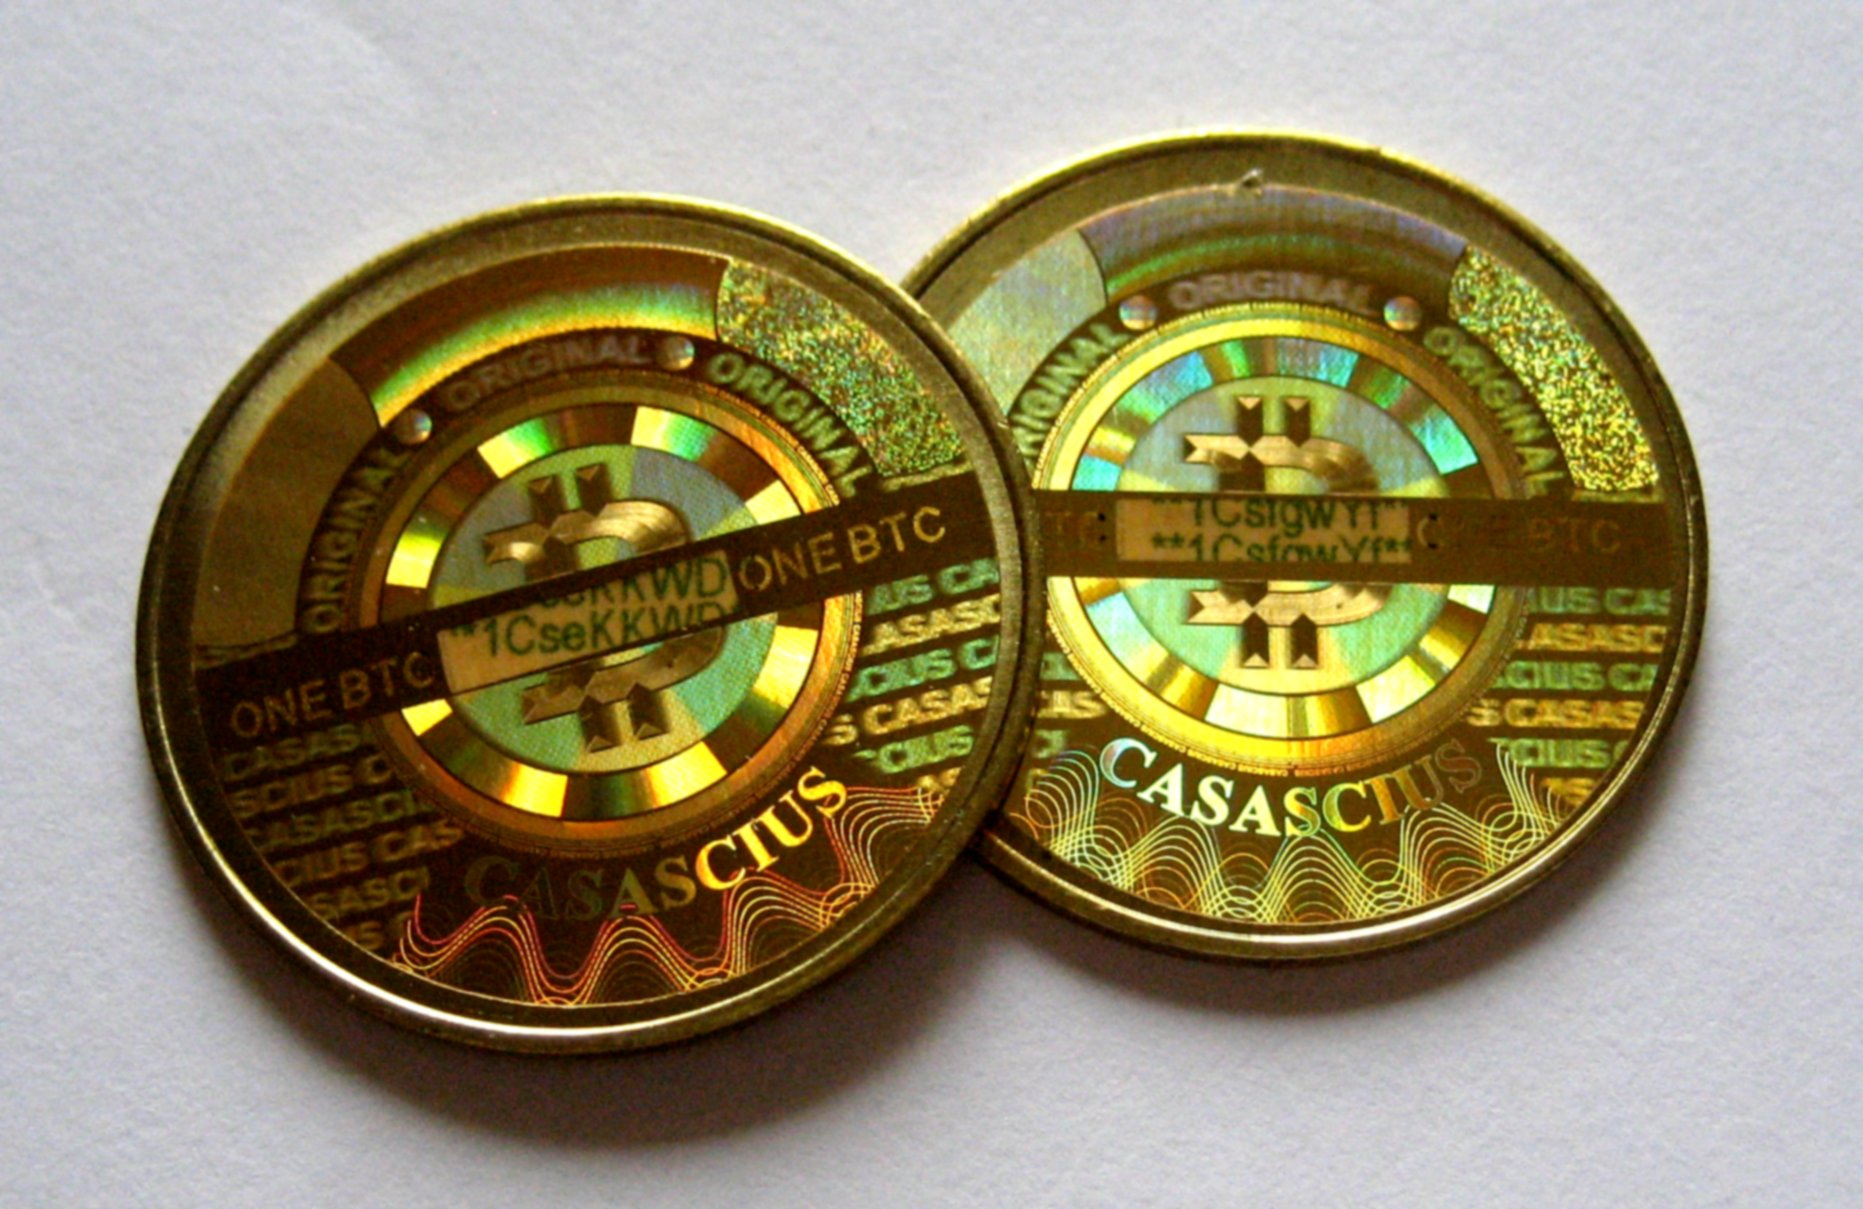 Meet Casascius The Physical Bitcoins With A Real Value